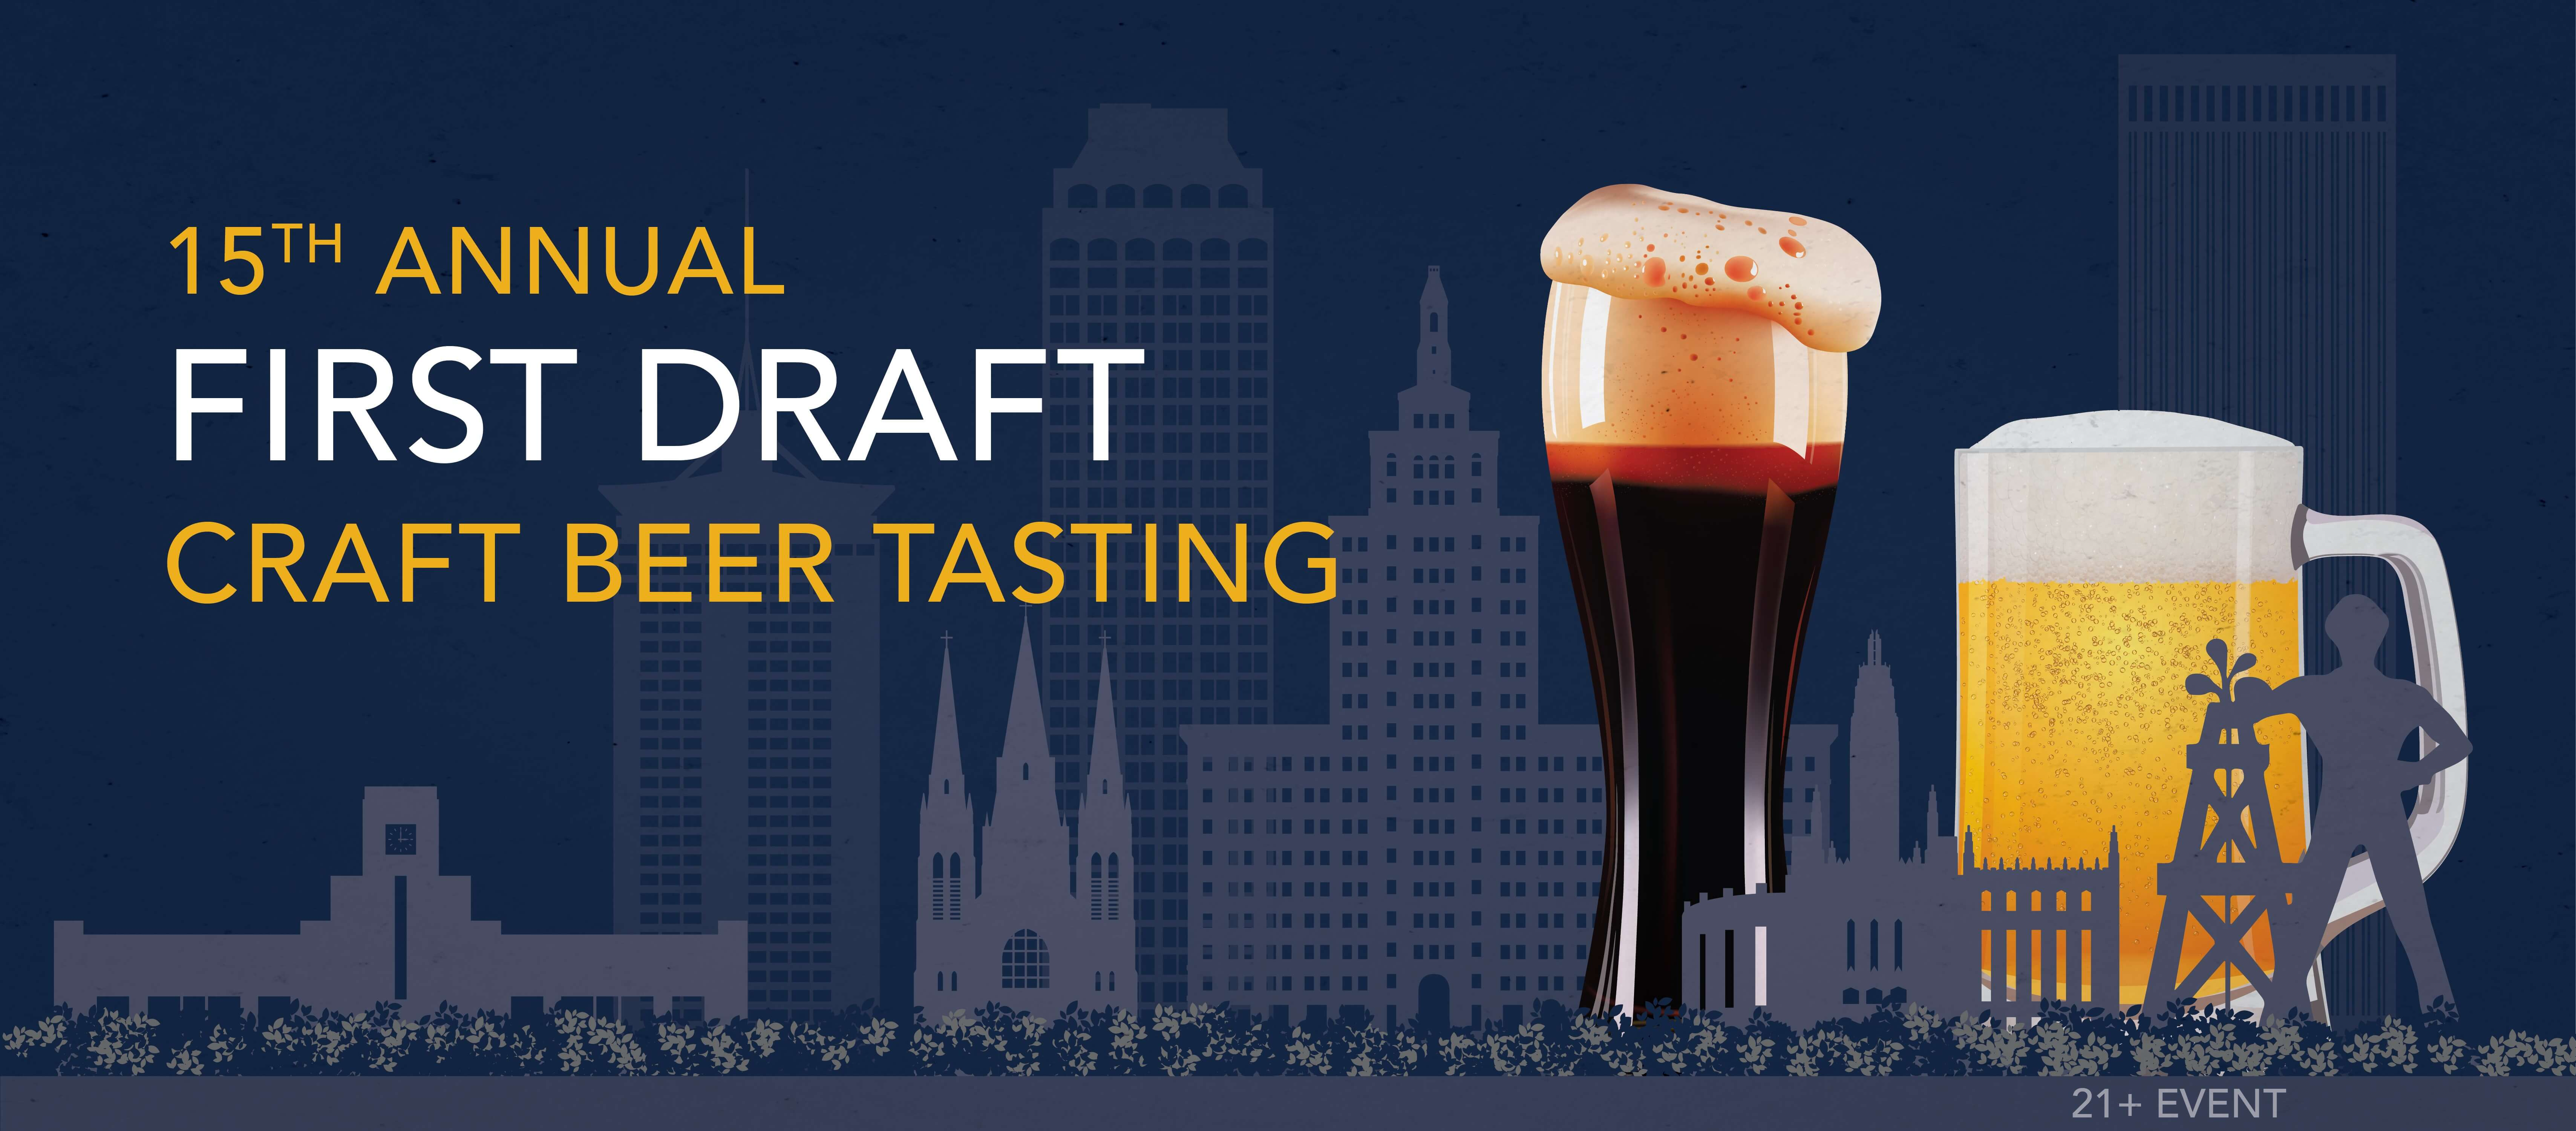 Tickets for First Draft Craft Beer Tasting 15 in Tulsa from BeerFests.com